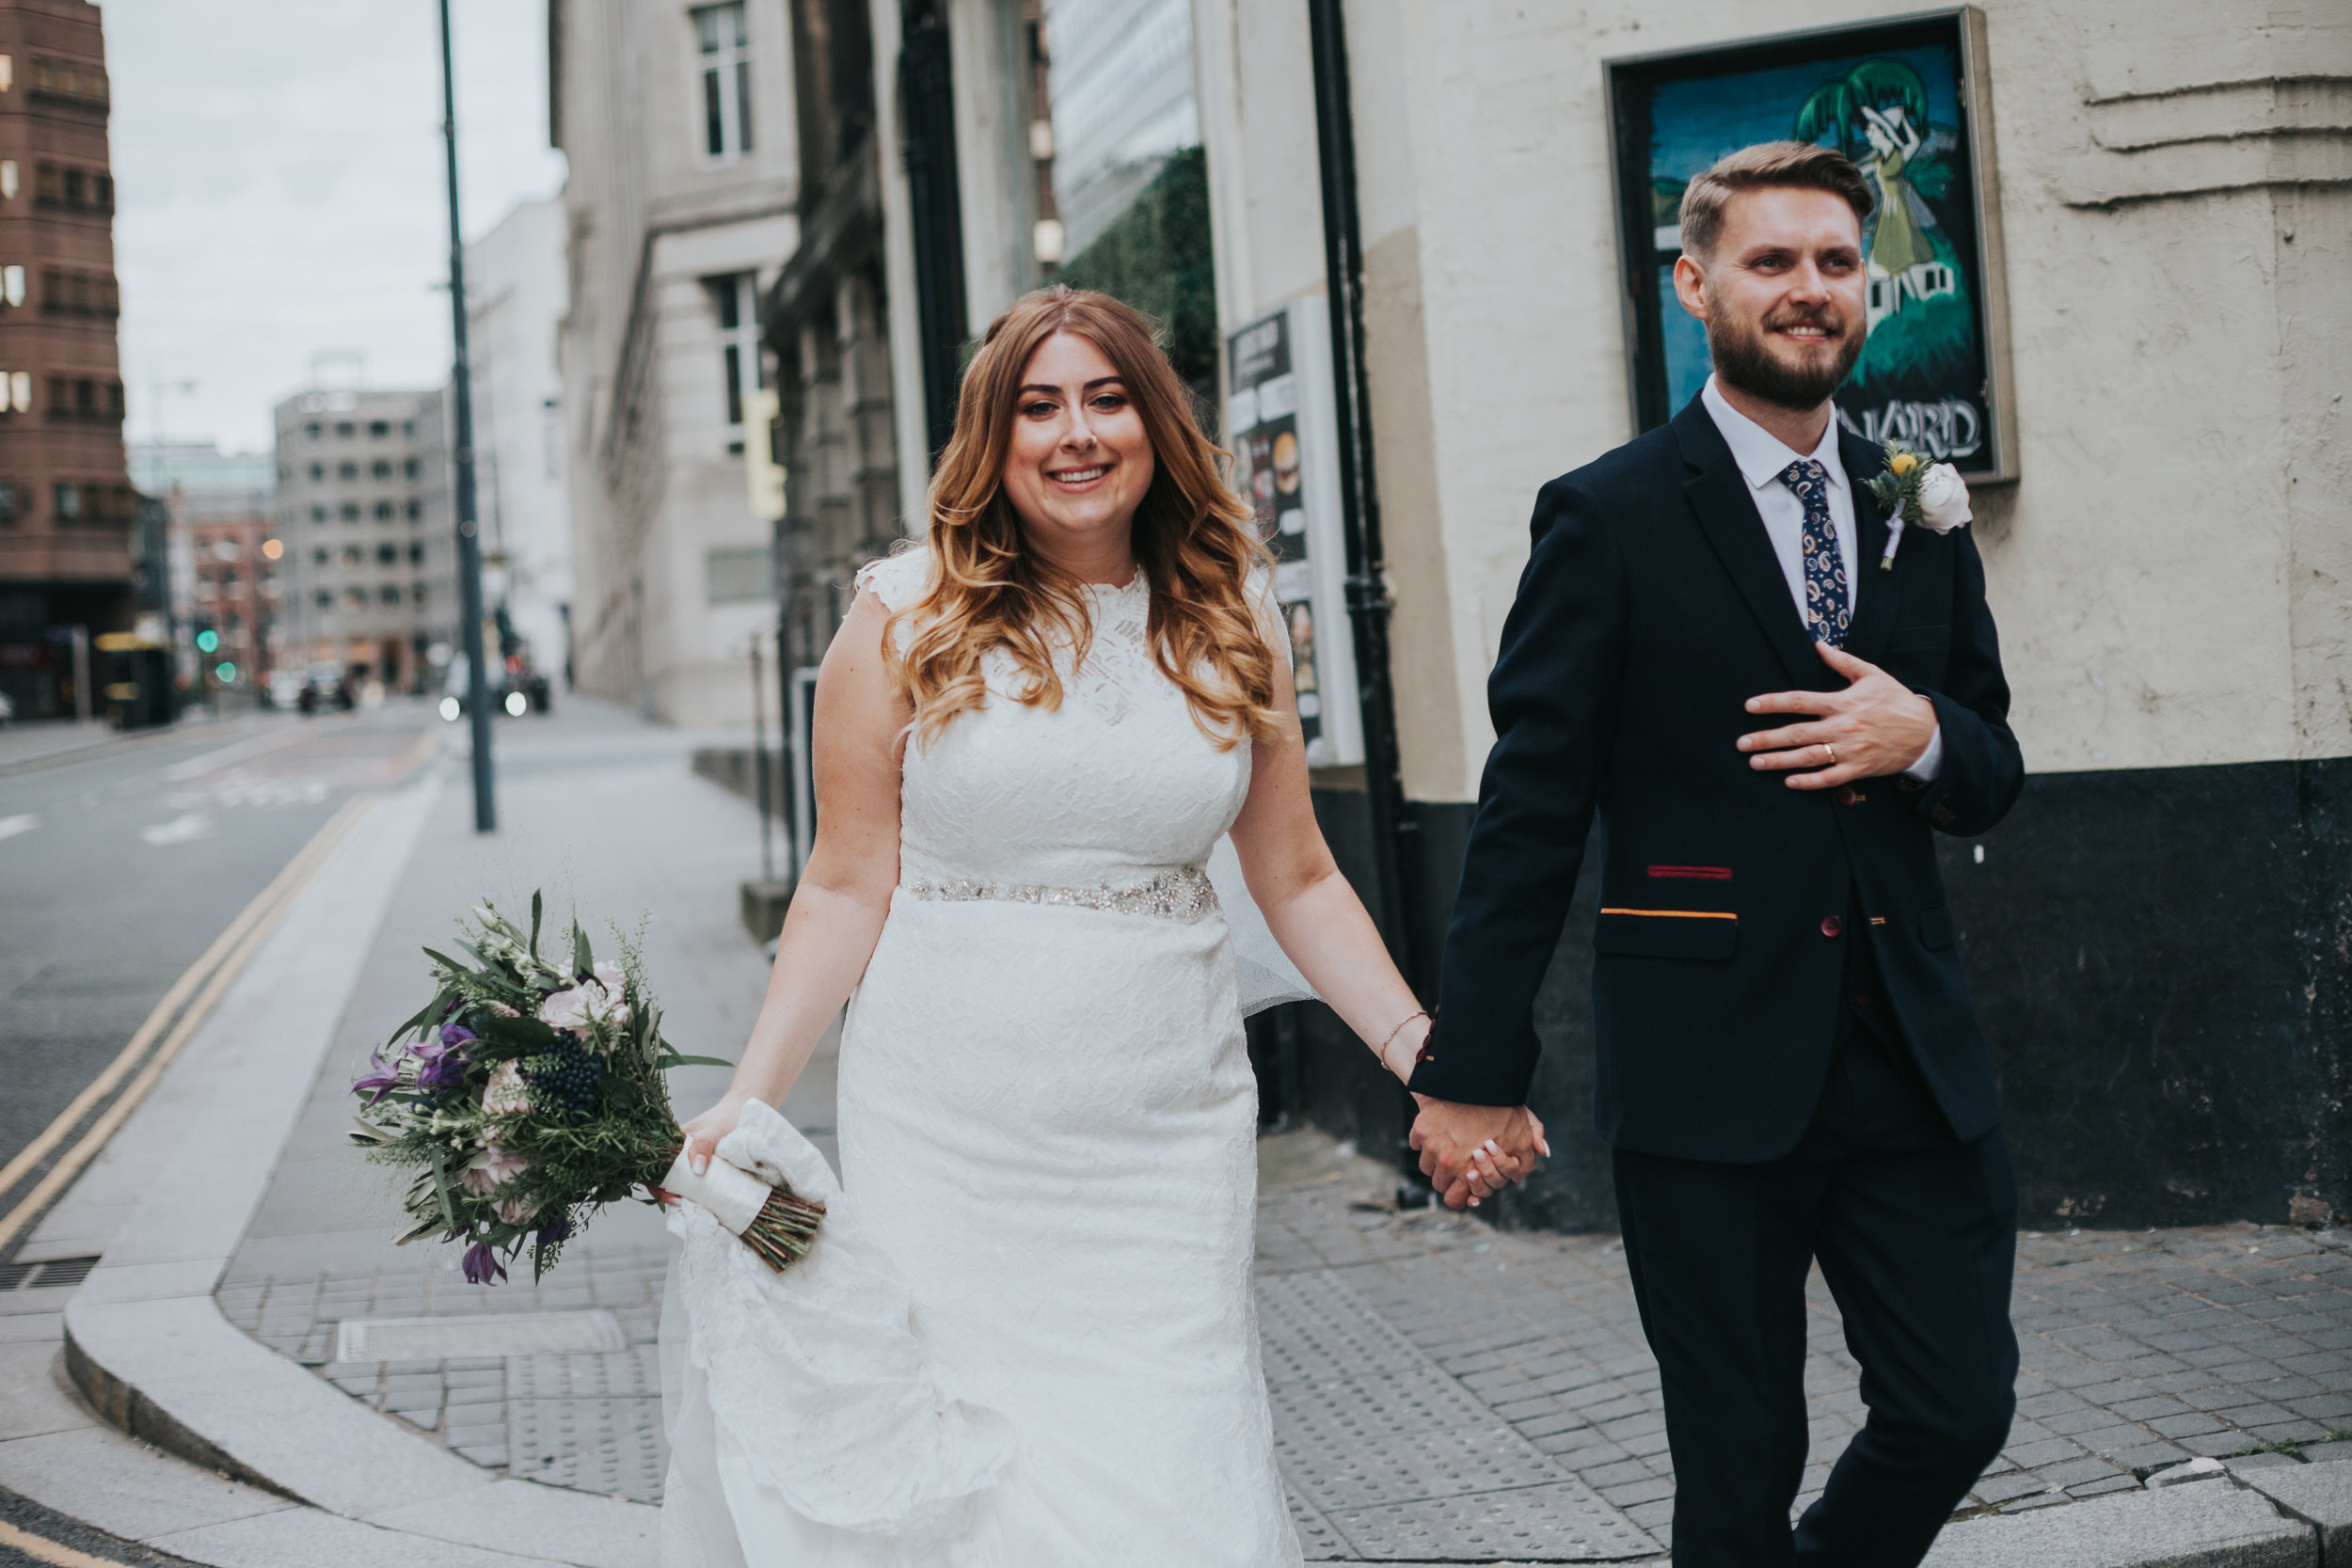 Bride and groom together in Liverpool Street.